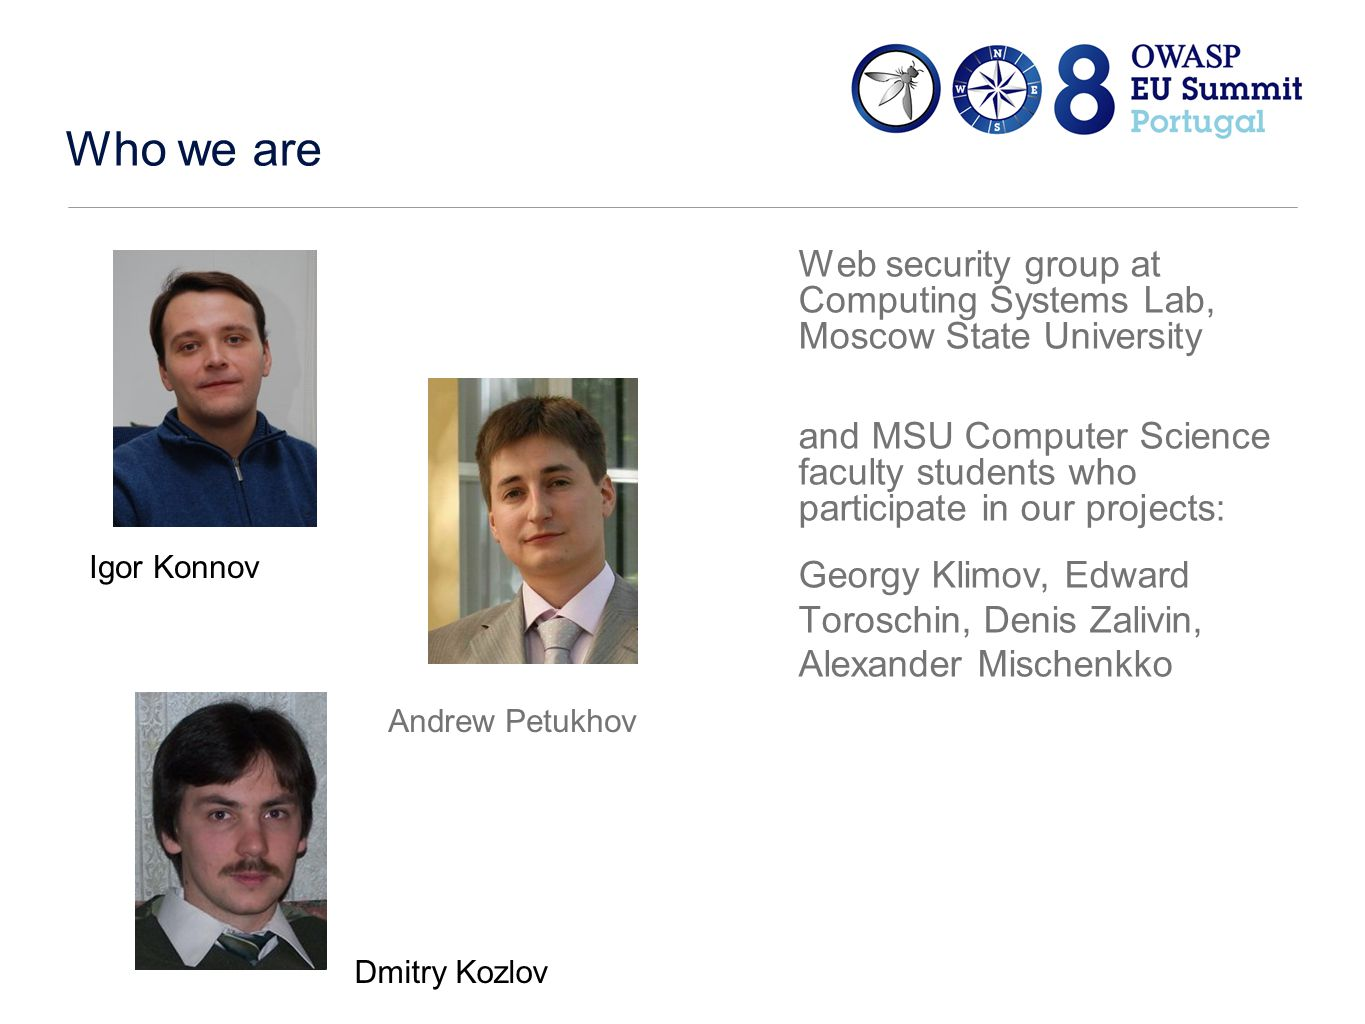 Who we are Web security group at Computing Systems Lab, Moscow State University and MSU Computer Science faculty students who participate in our projects: Georgy Klimov, Edward Toroschin, Denis Zalivin, Alexander Mischenkko Igor Konnov Andrew Petukhov Dmitry Kozlov